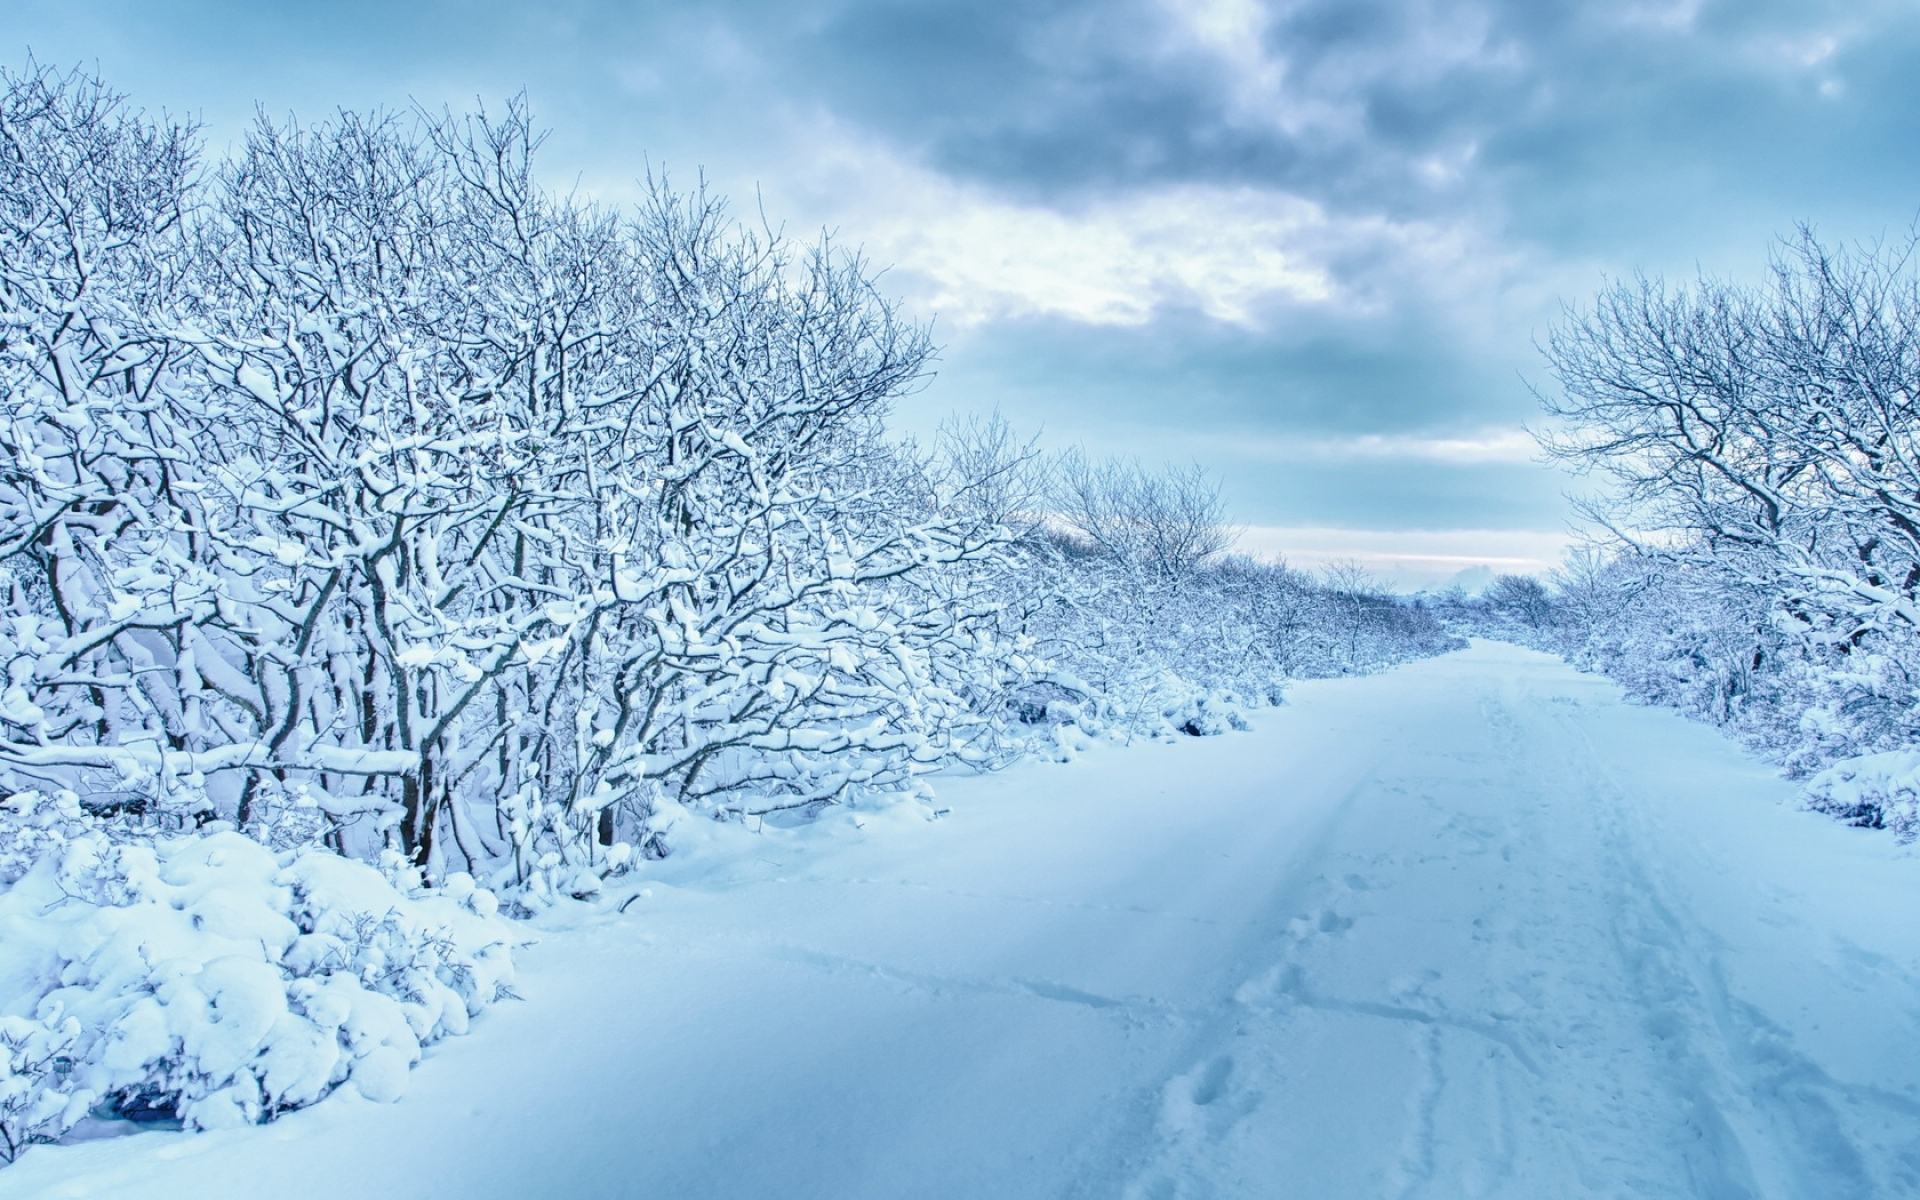 Free Snow Falling Wallpaper Snowy Trees Amp Walk Way Wallpapers Snowy Trees Amp Walk Way